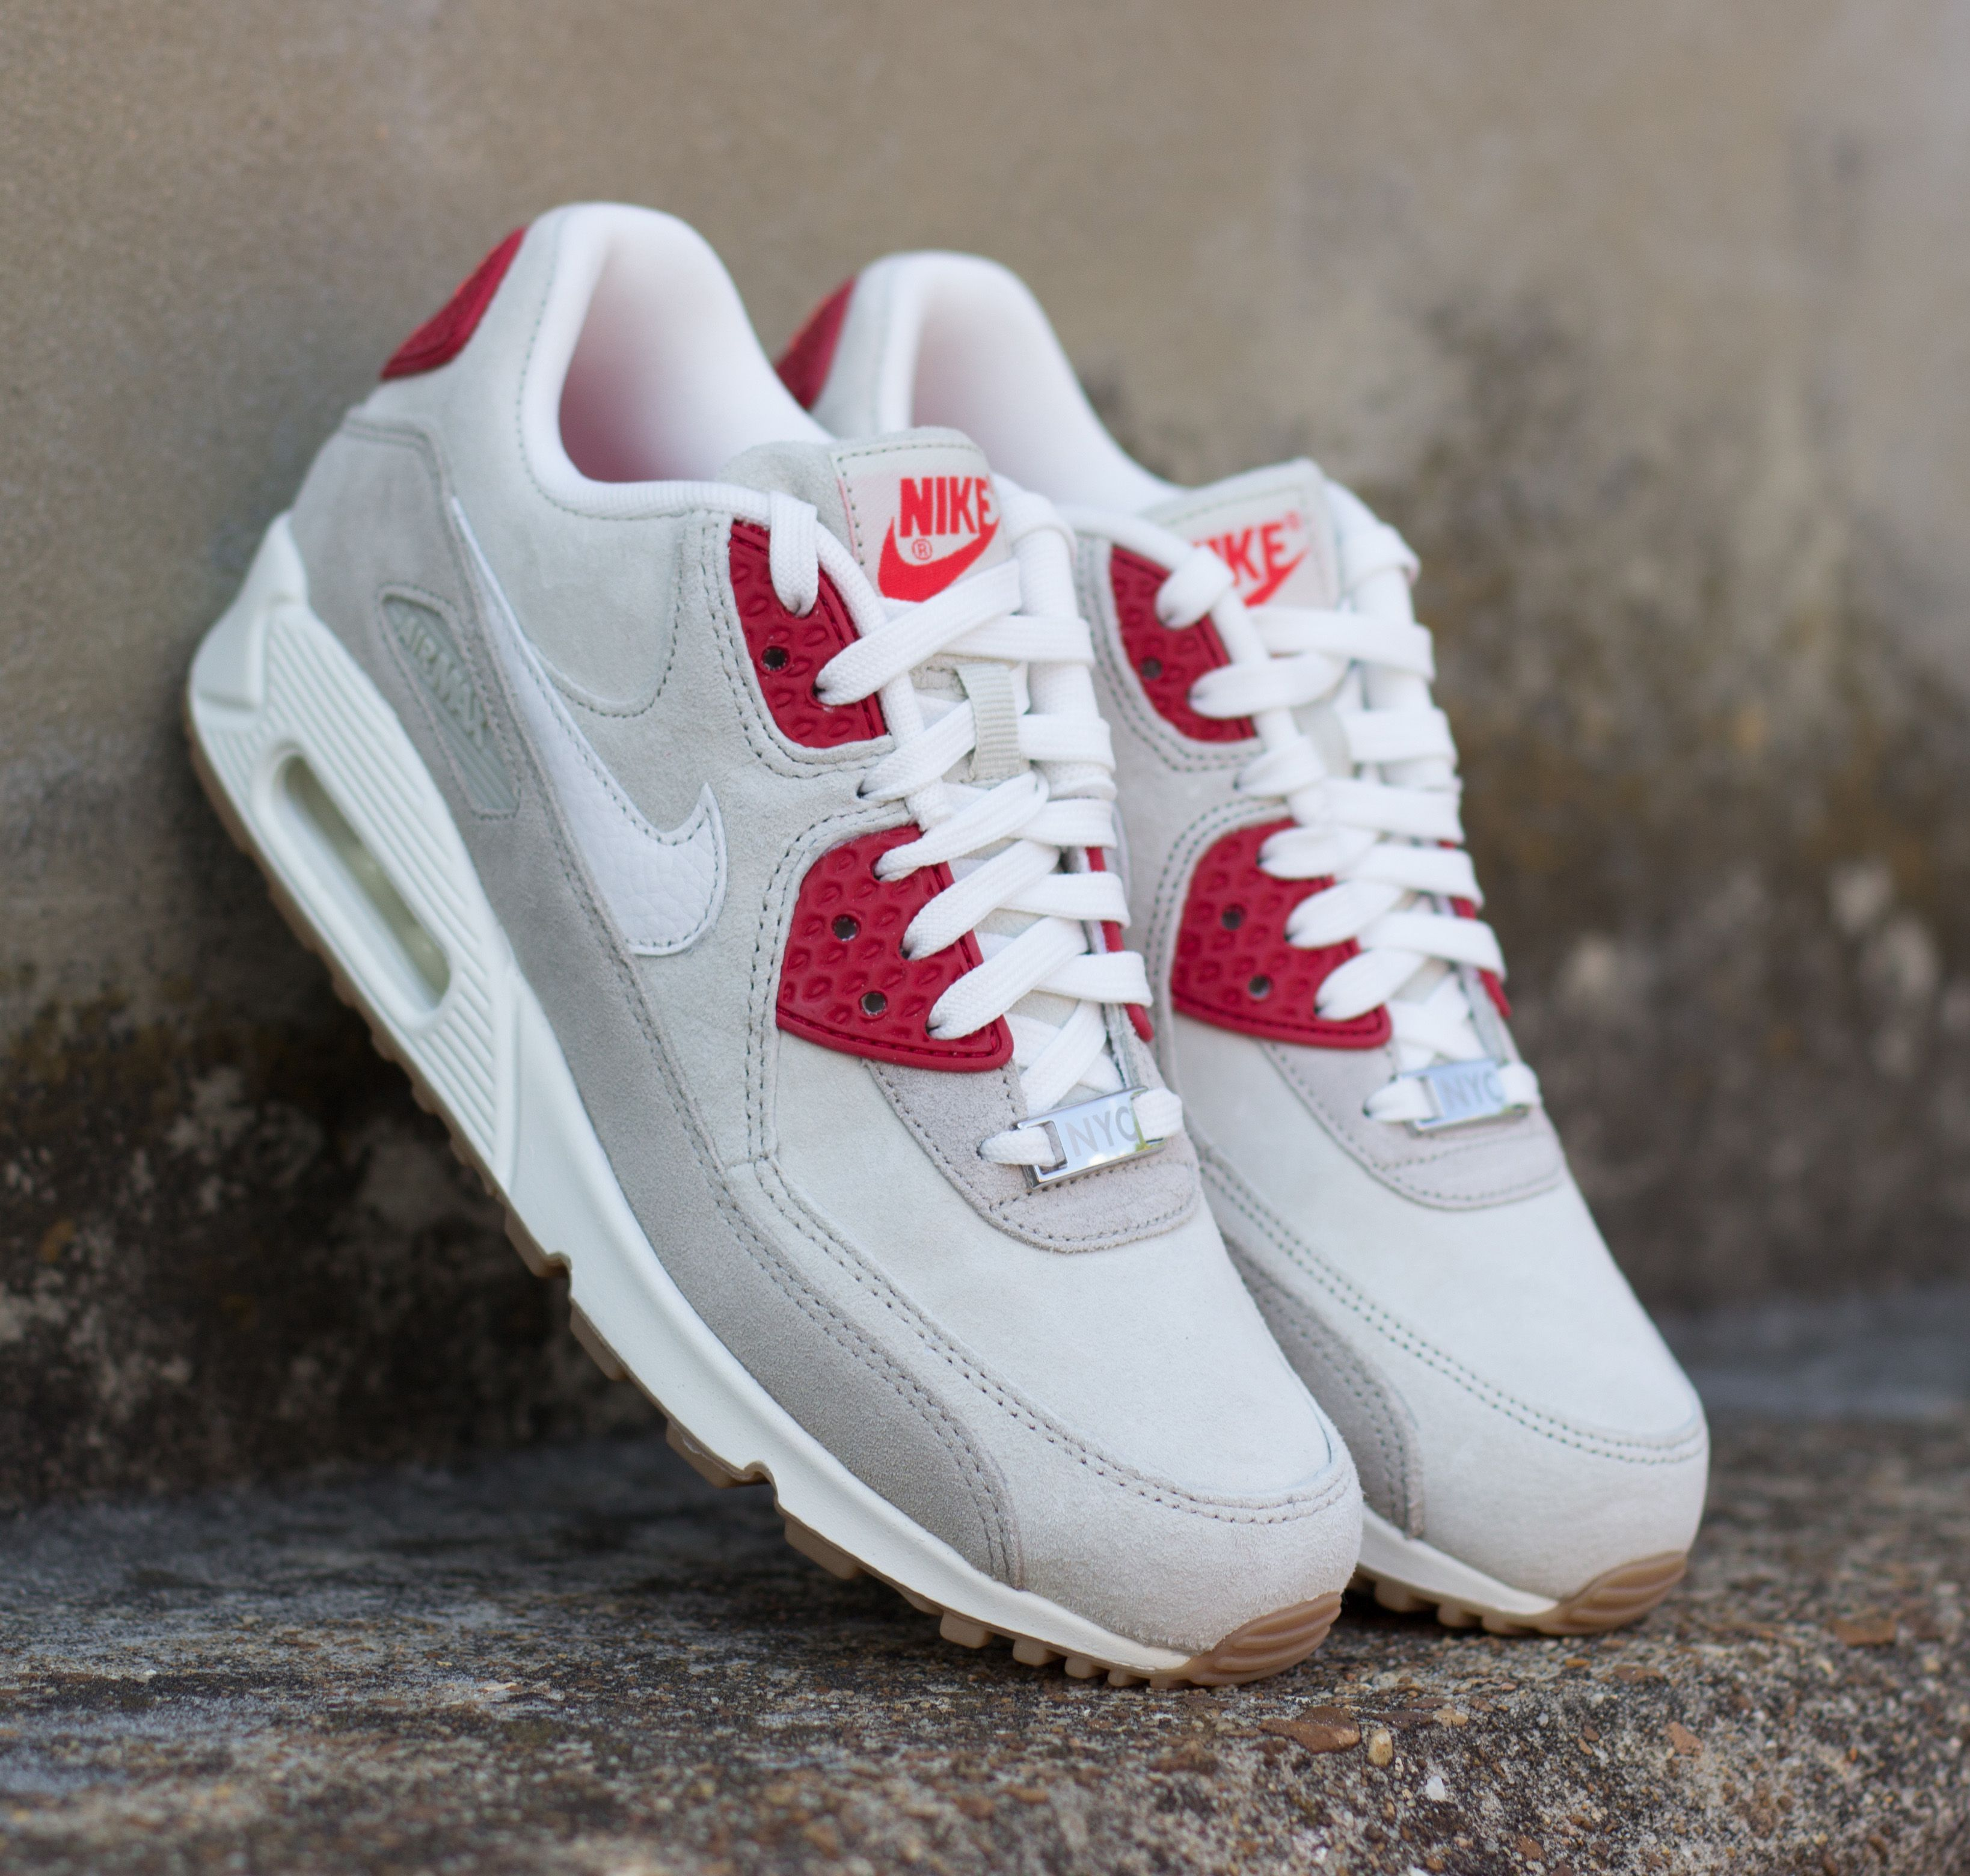 The Women S Nike Air Max 90 New York Strawberry Cheesecake Is Out And Available Now On Citygear Com Nike Outfits With Converse Nike Air Max 90